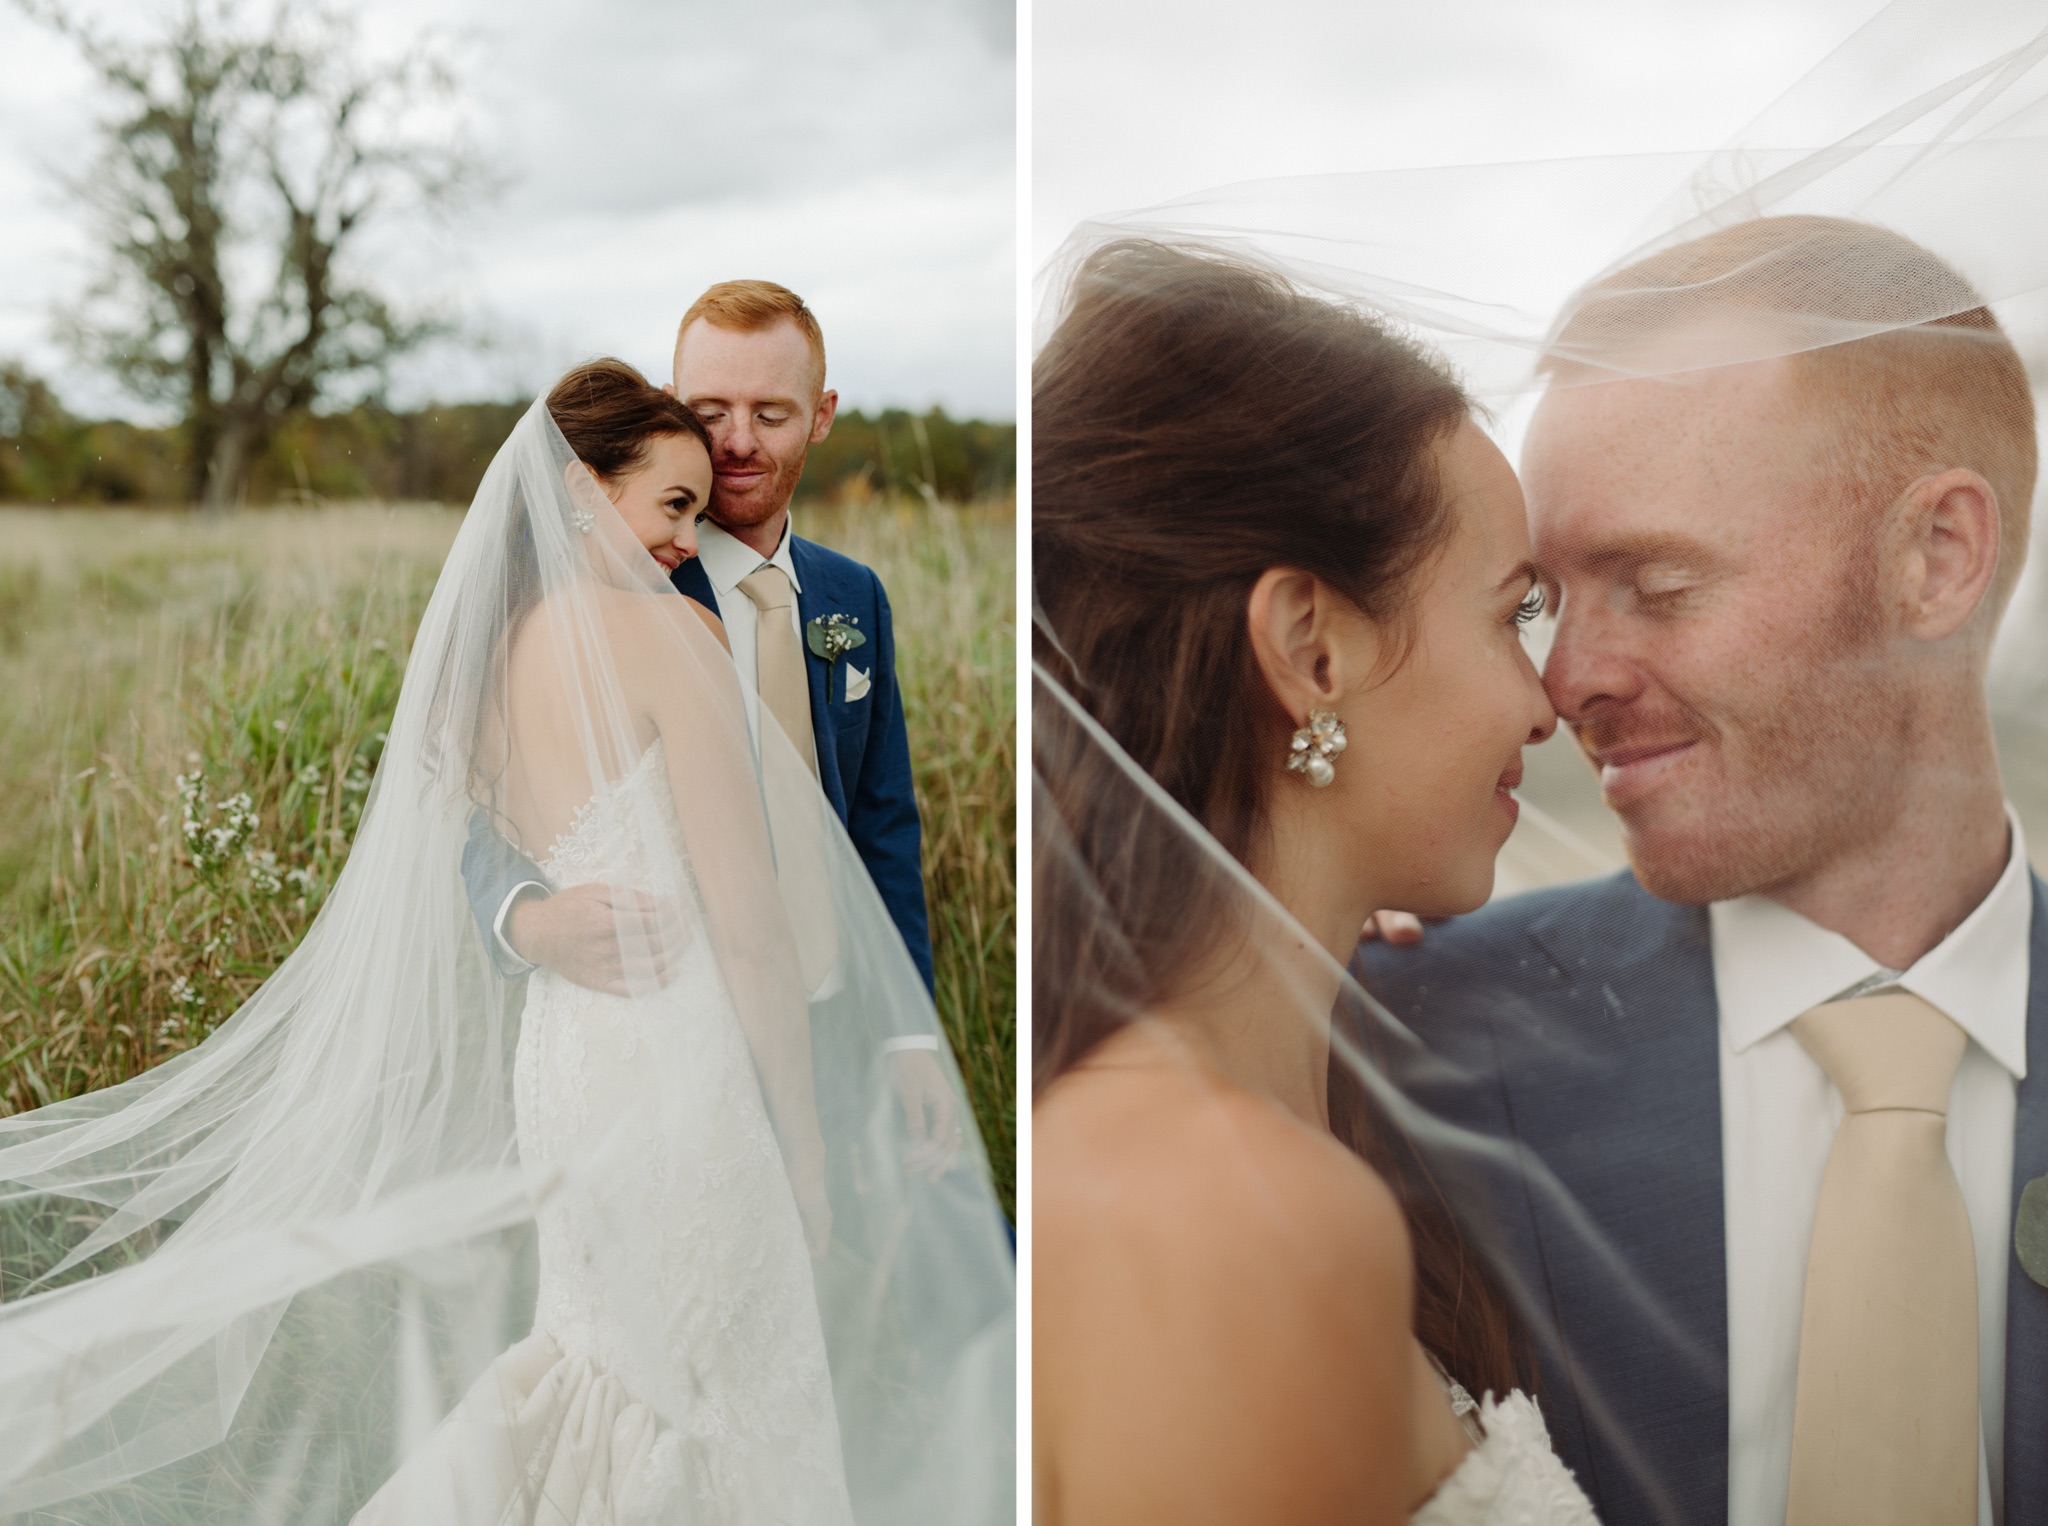 bride and groom hugging with bride's veil over them